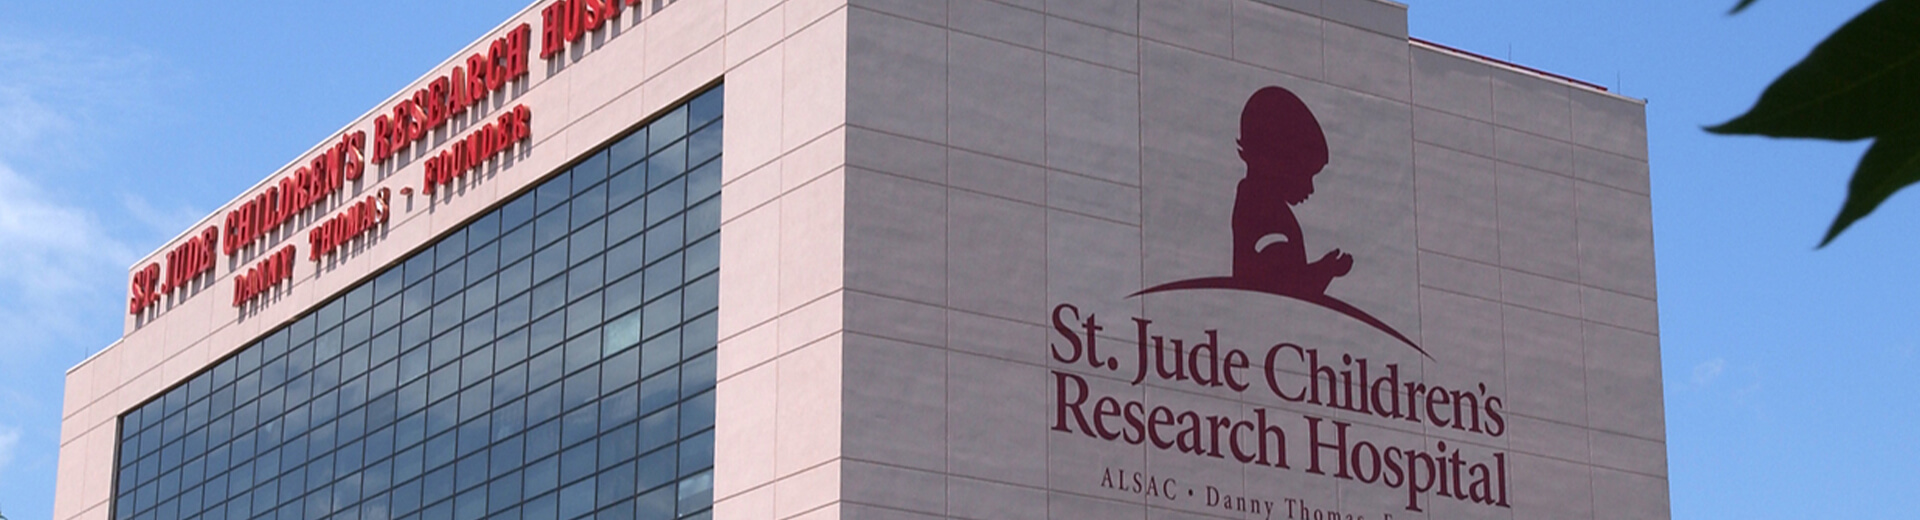 Donations for St. Judes Research Hospital